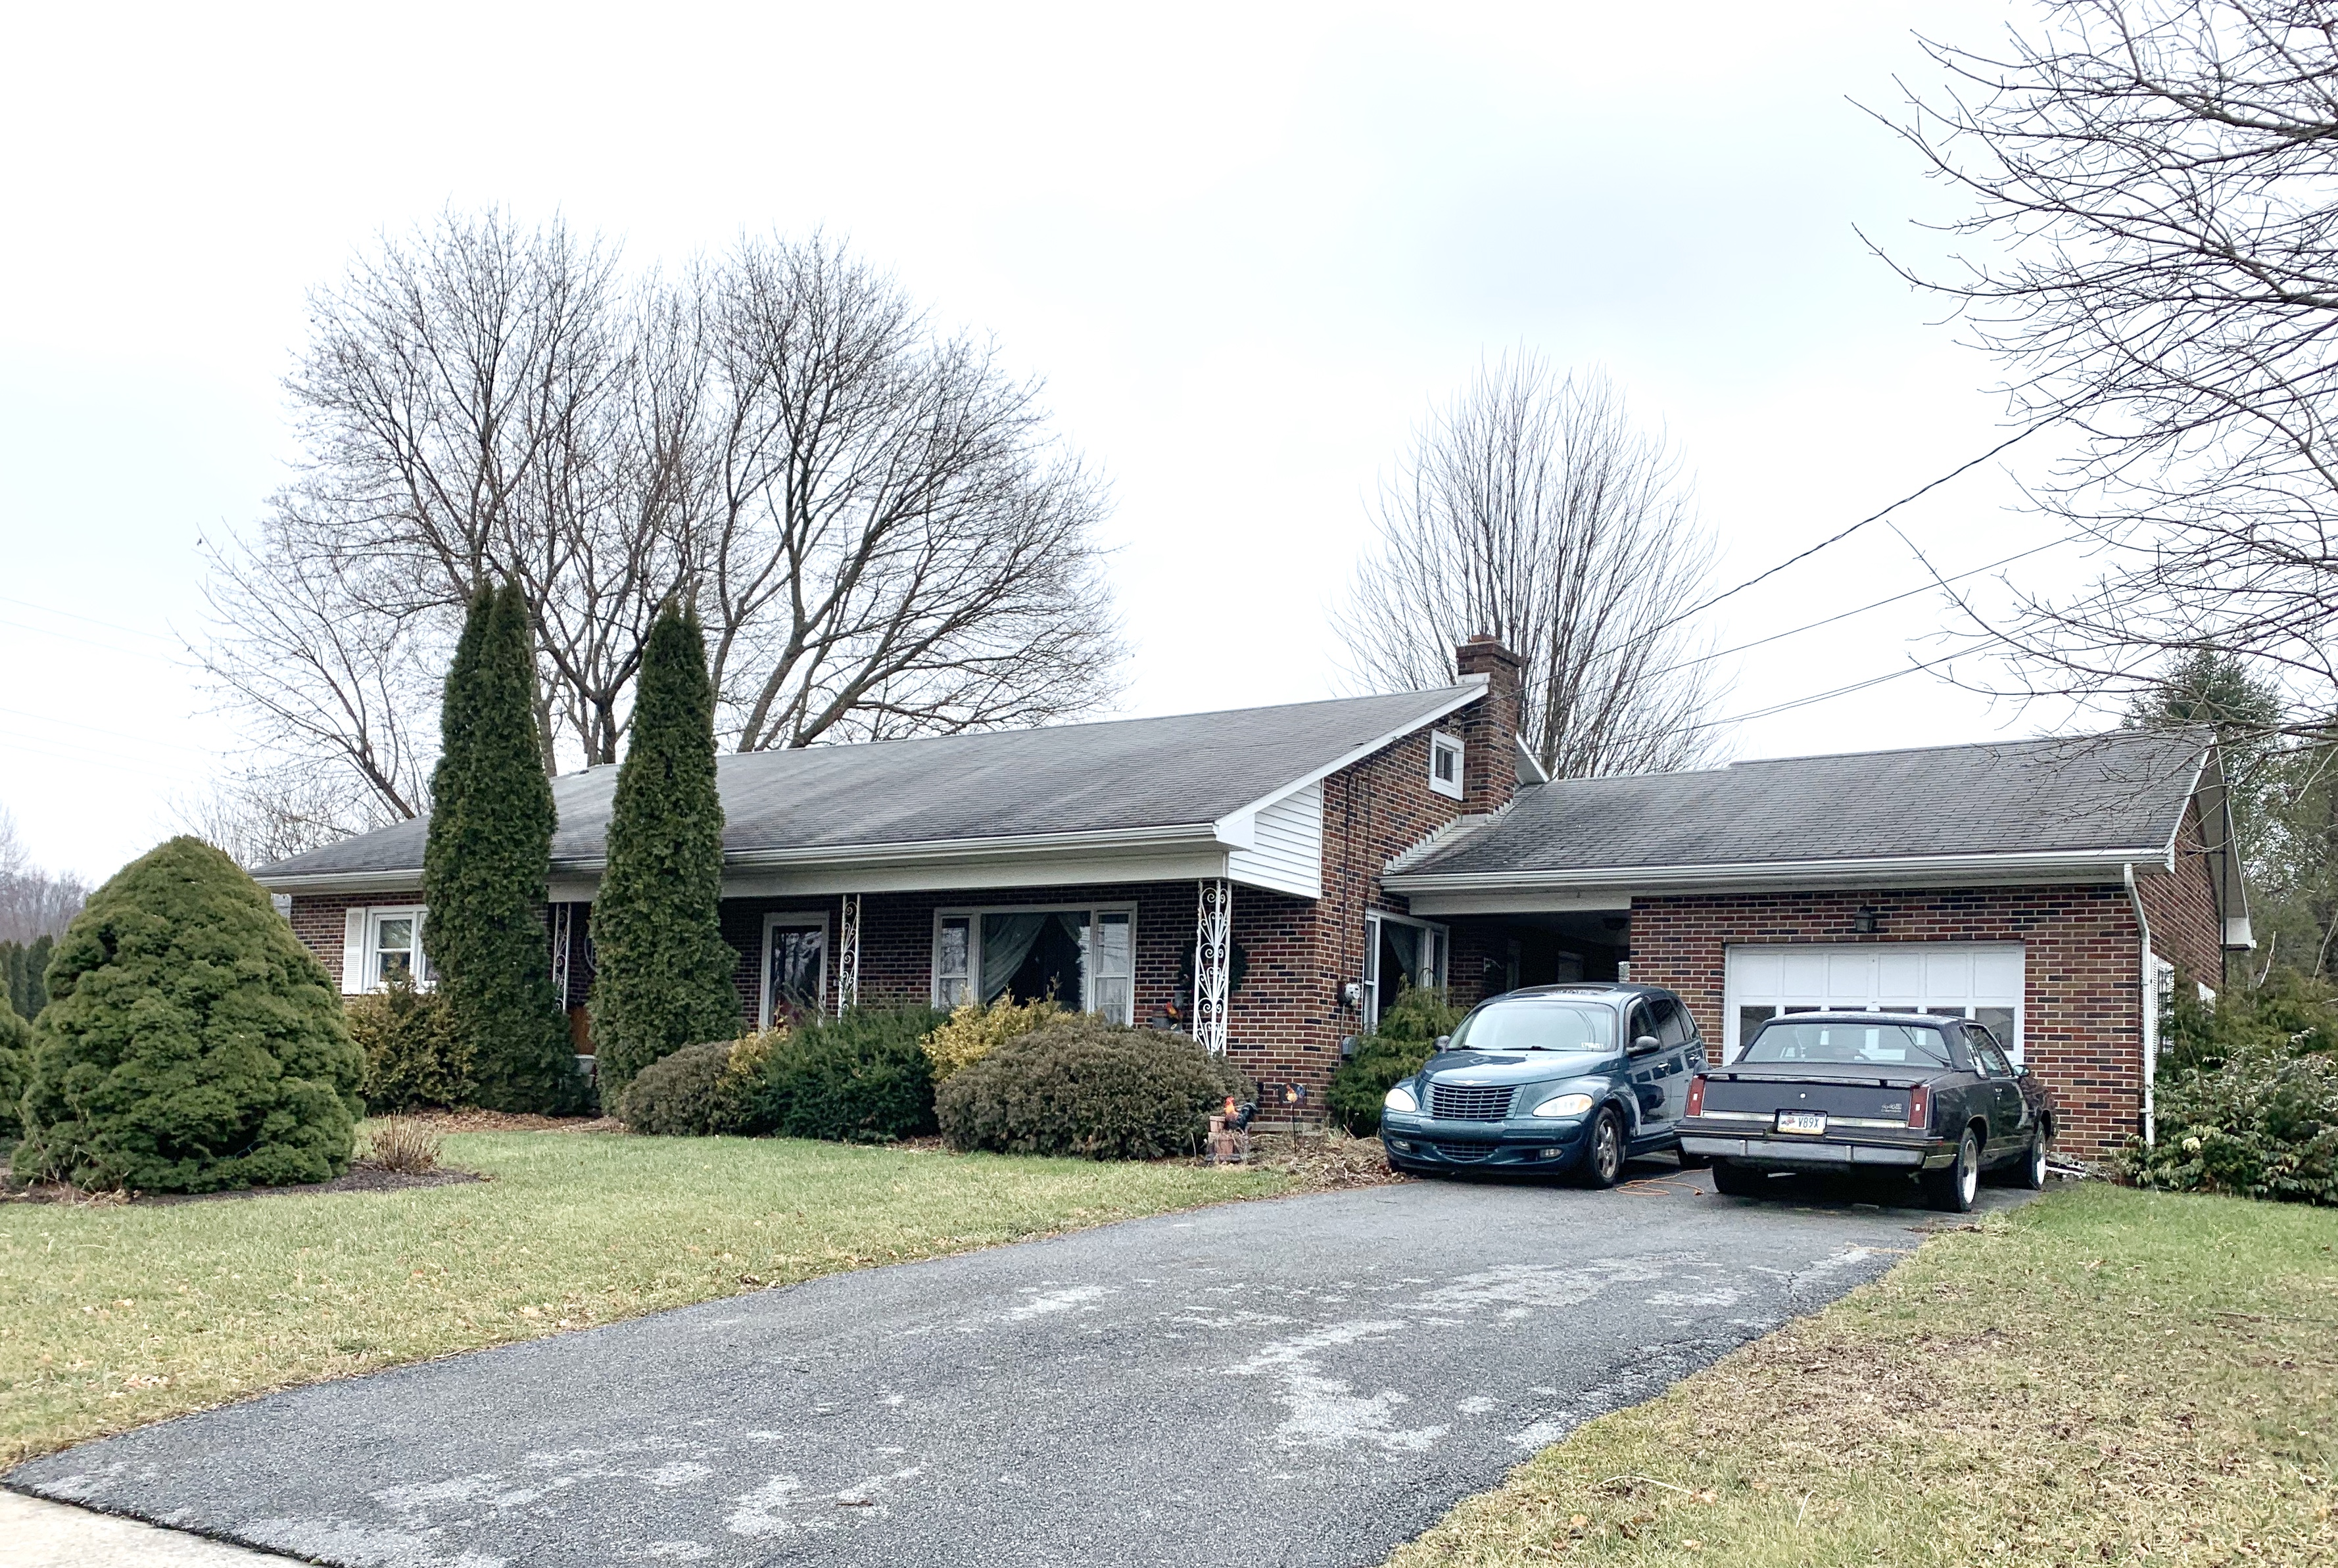 Macungie - 4 Bedroom 1 Bath $272,000